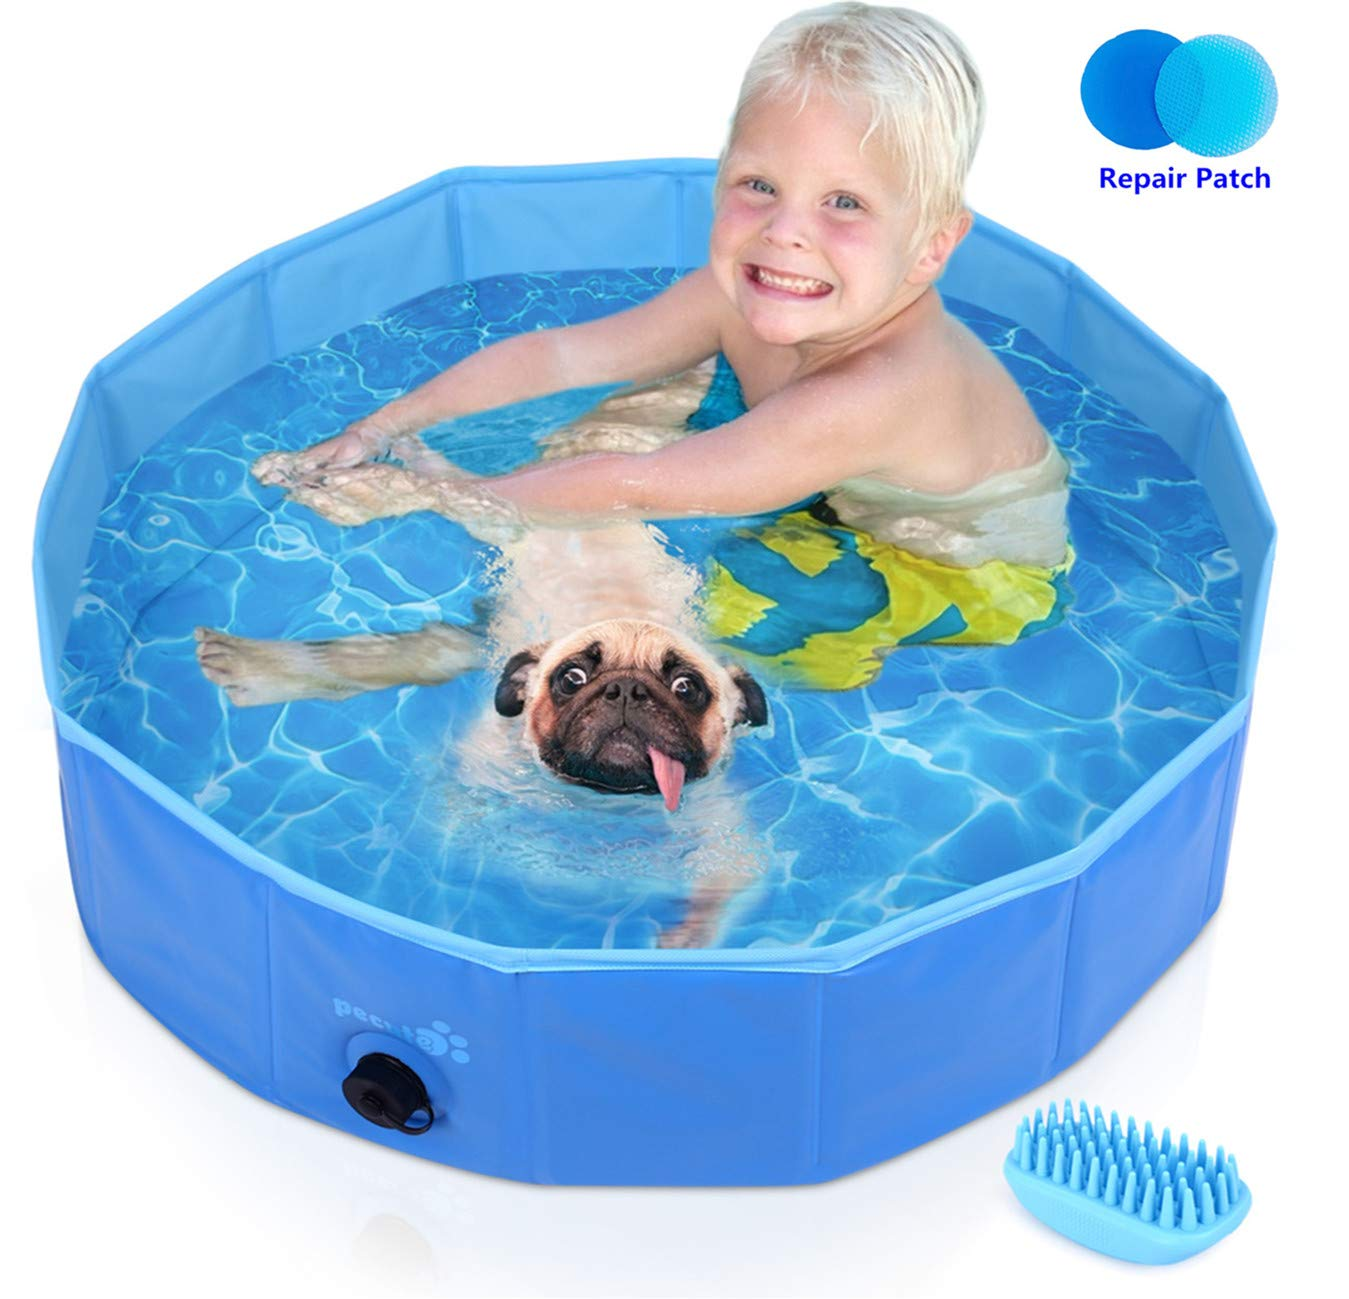 Fantastic idea small children and small children to cool off together.